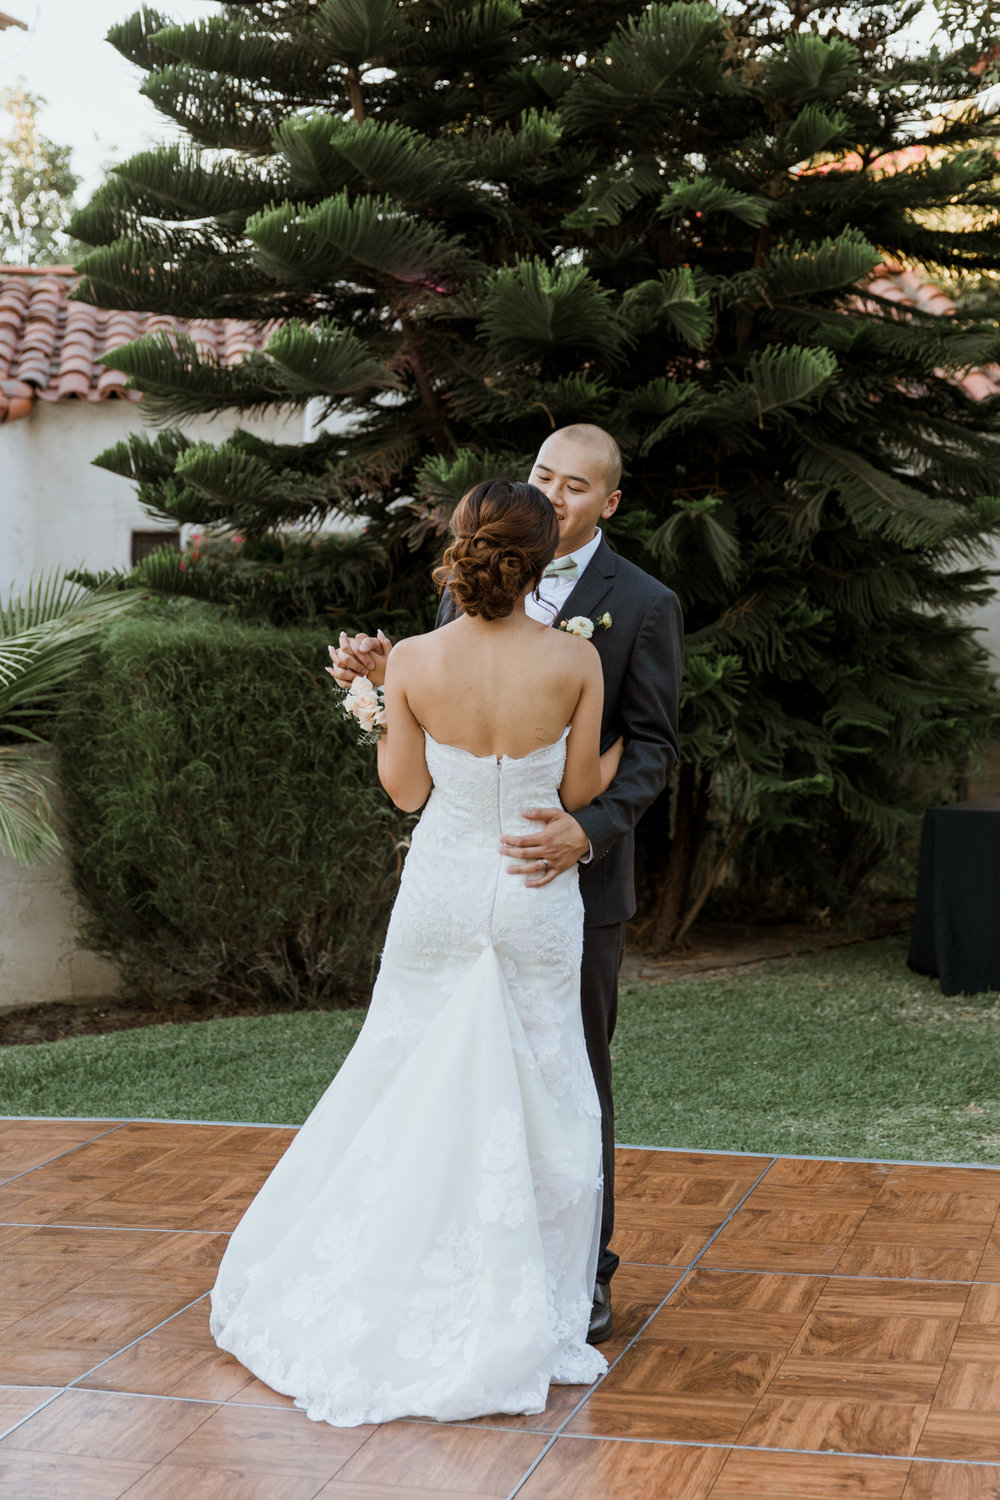 southern california wedding photographer // griffith house anaheim, ca // www.abbihearne.com